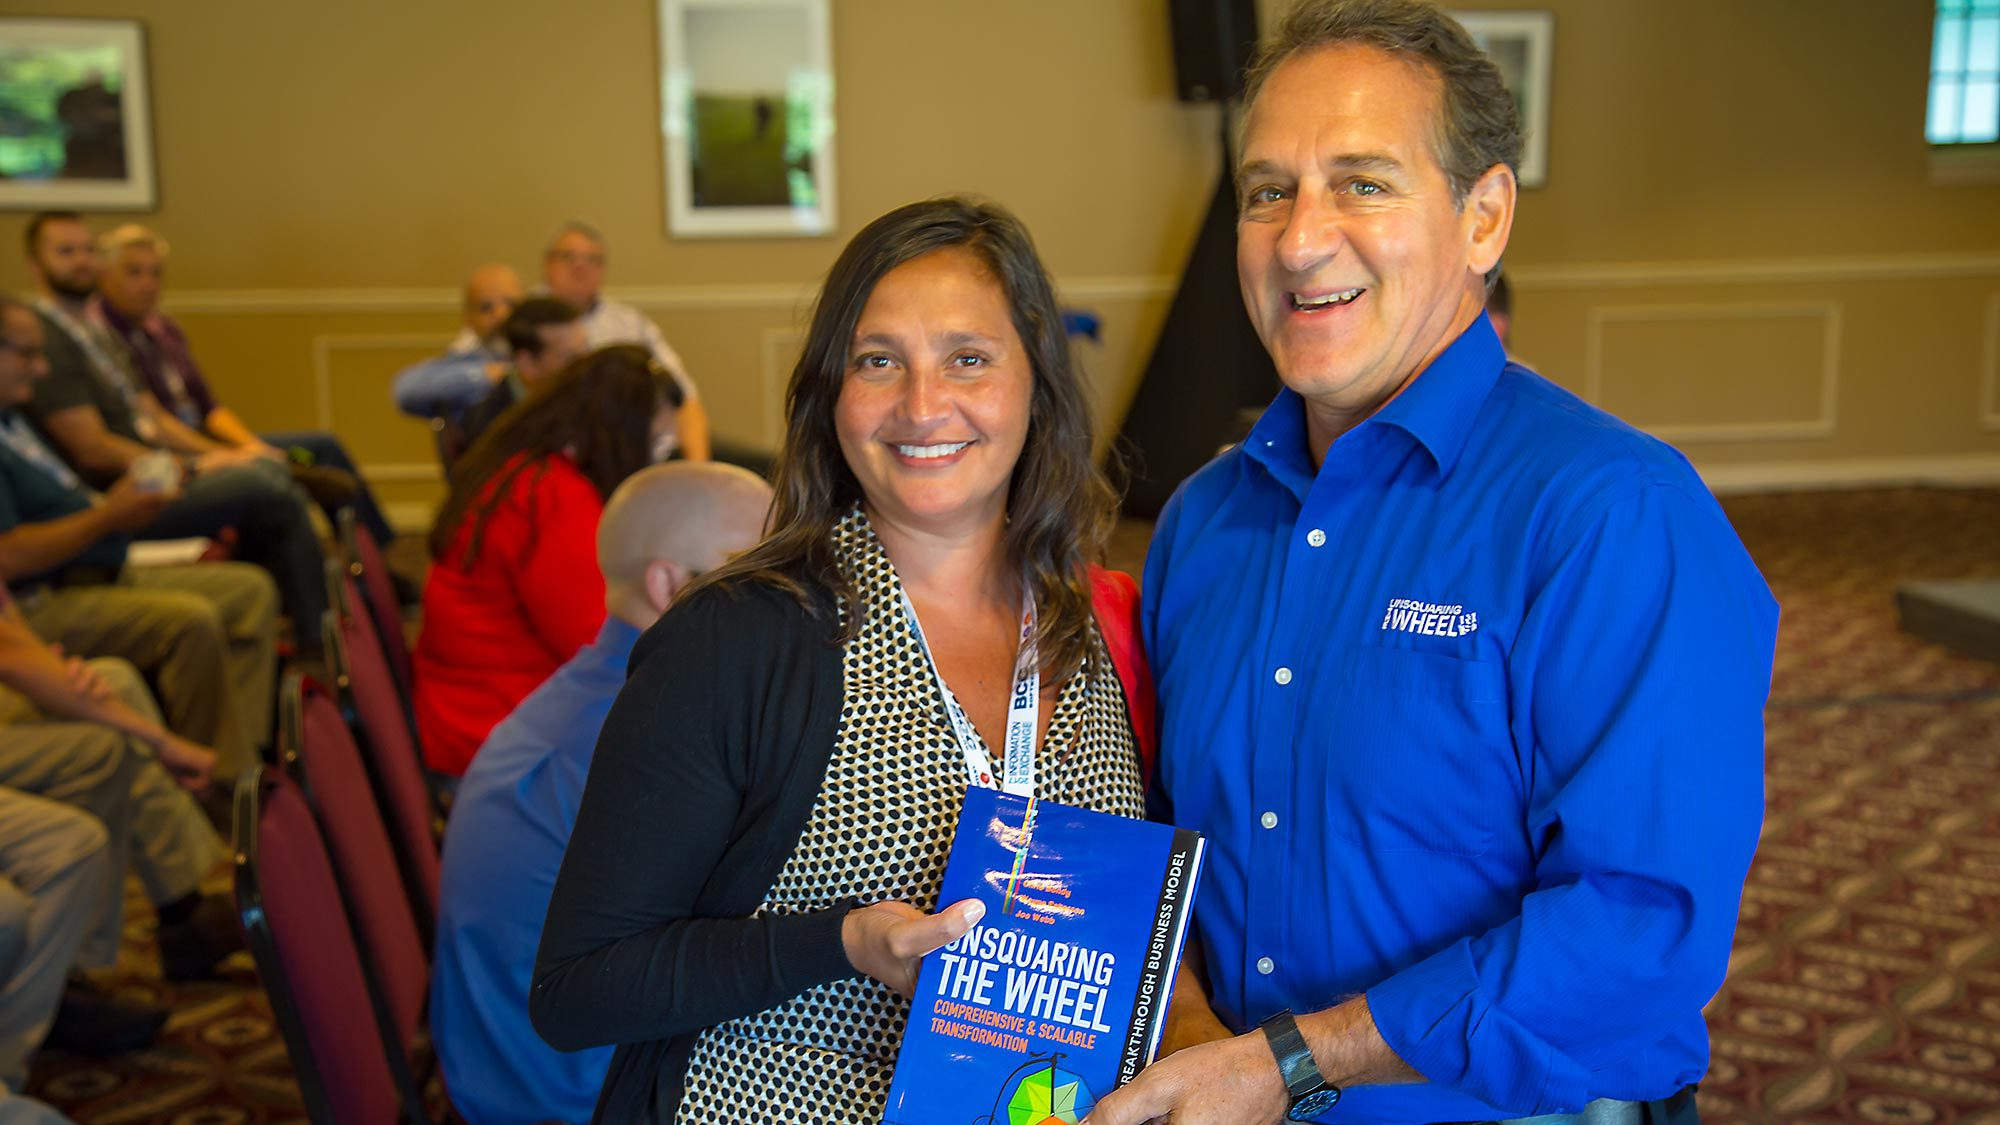 Christine Soward, President/Owner of DMS Ink is one of the many prize winners. Her prize was a book by keynote speaker Chris Bondy.